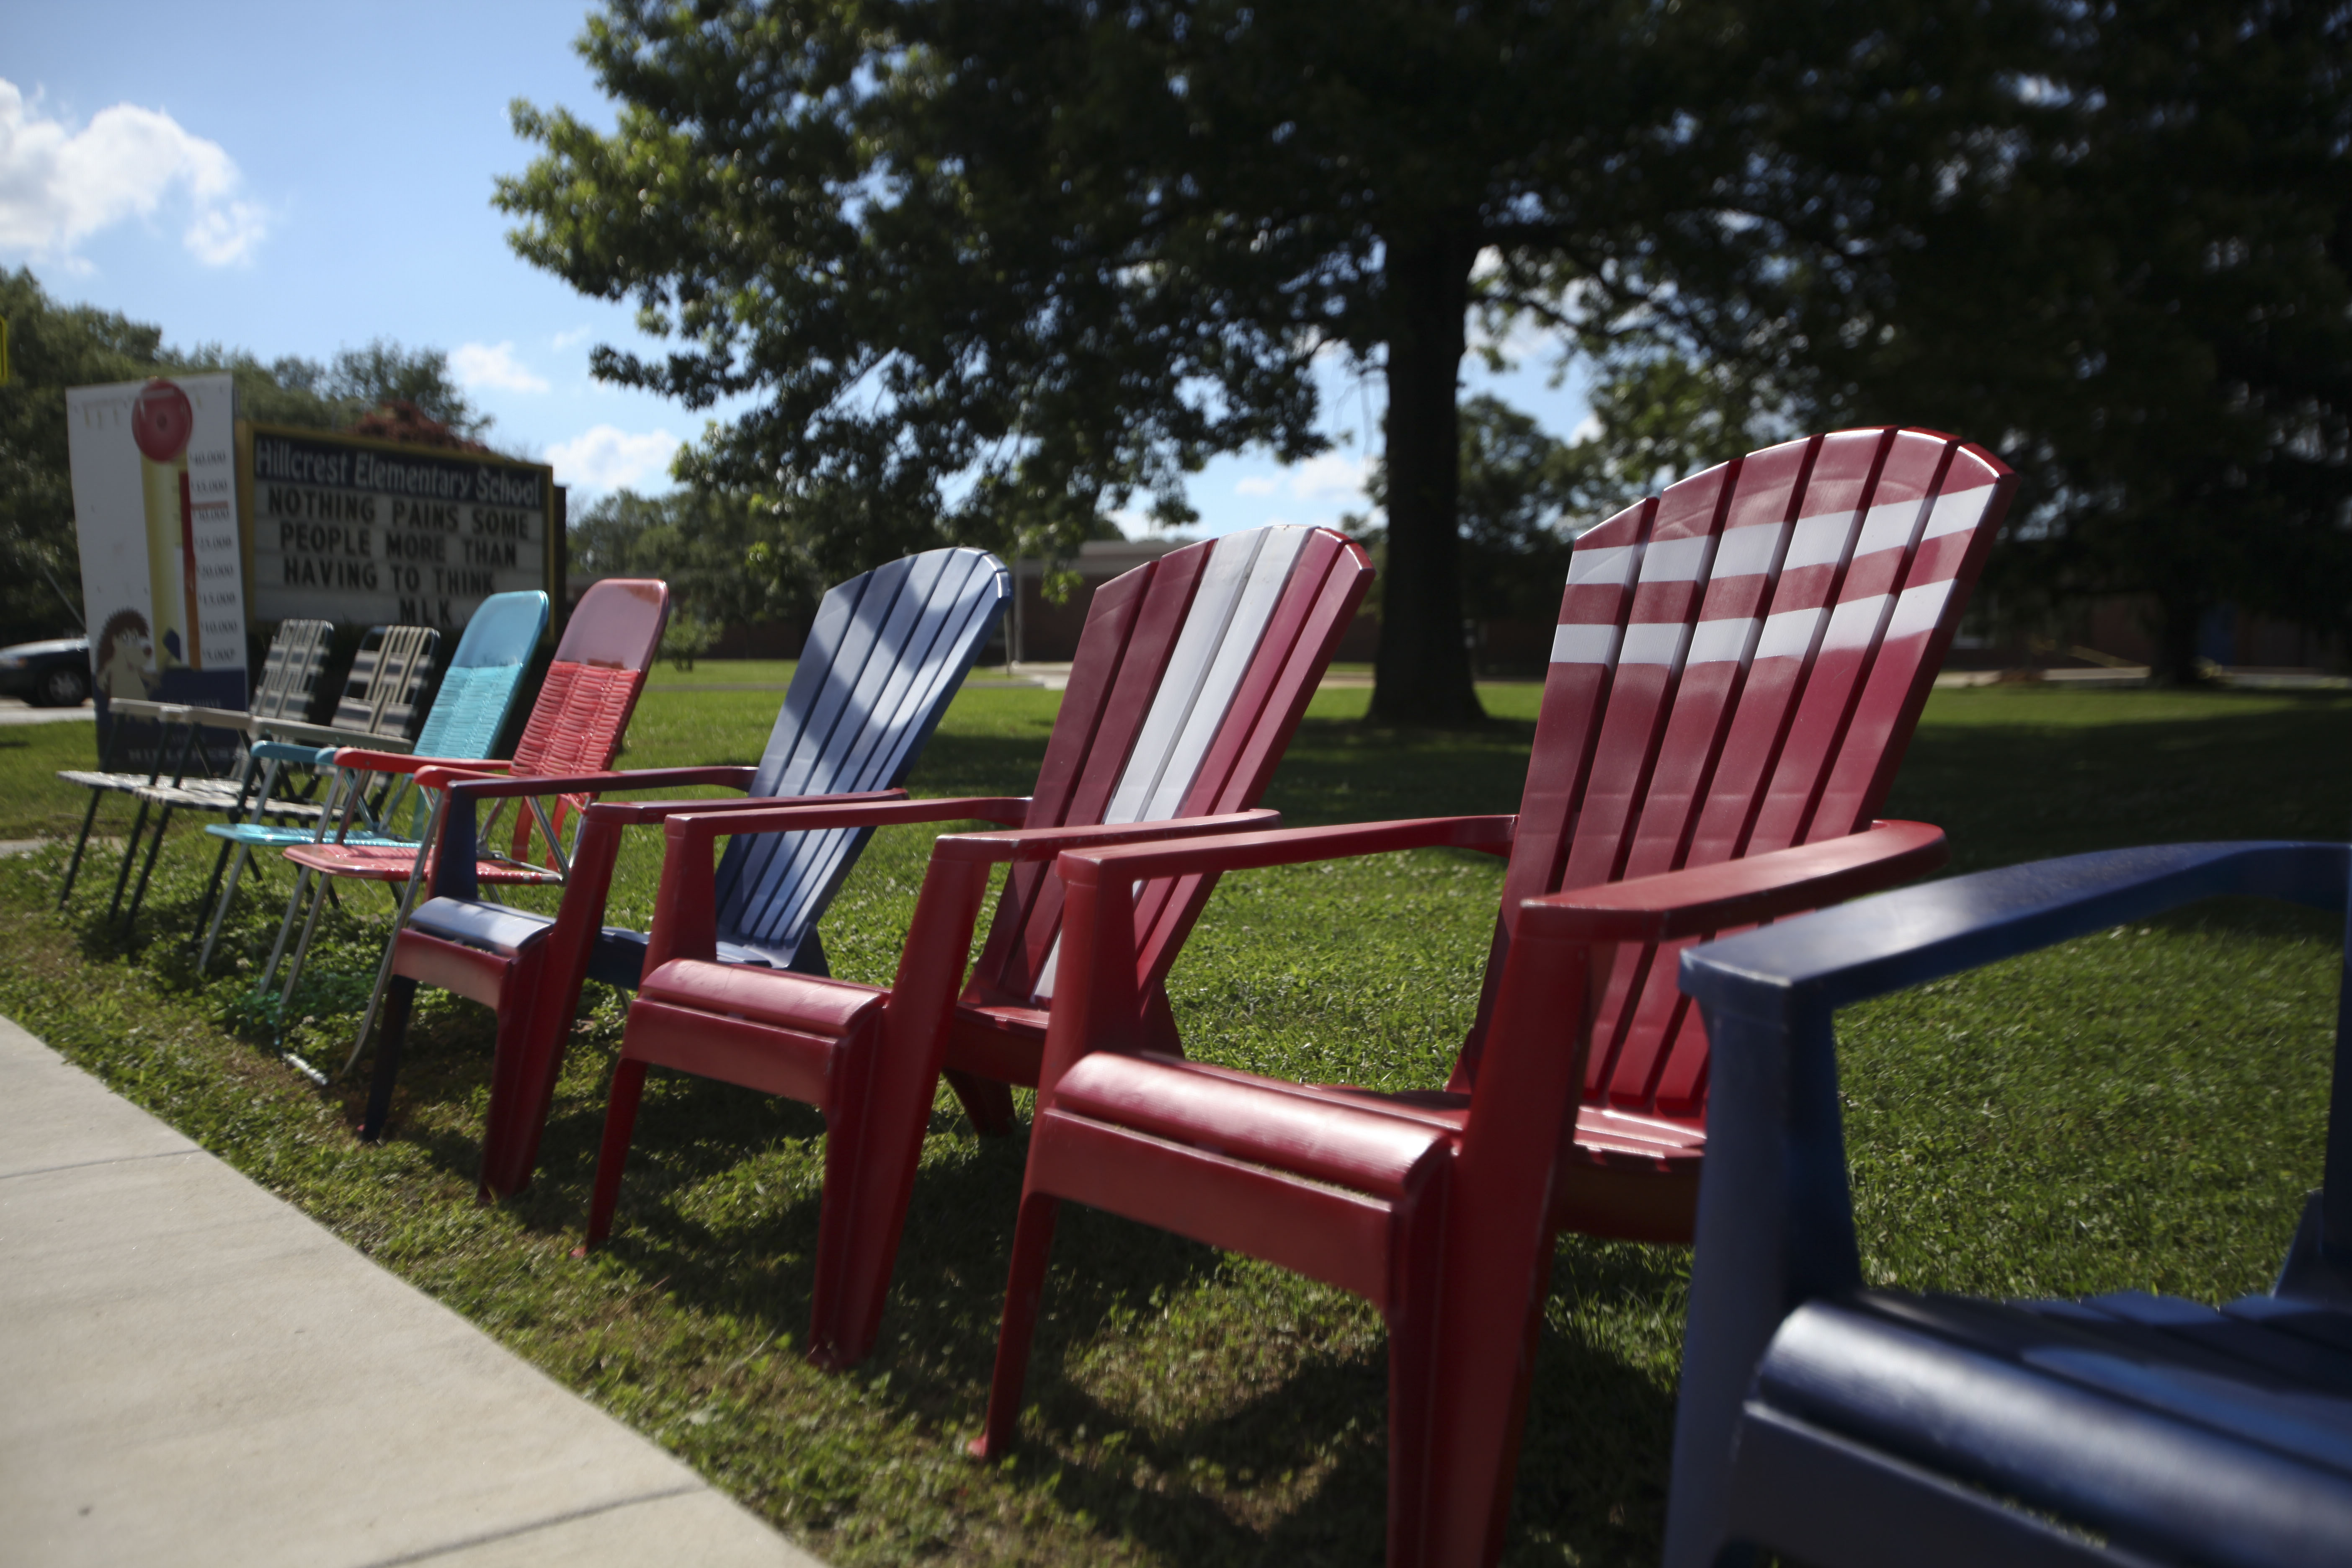 The chair tradition in Catonsville's Fourth of July celebration